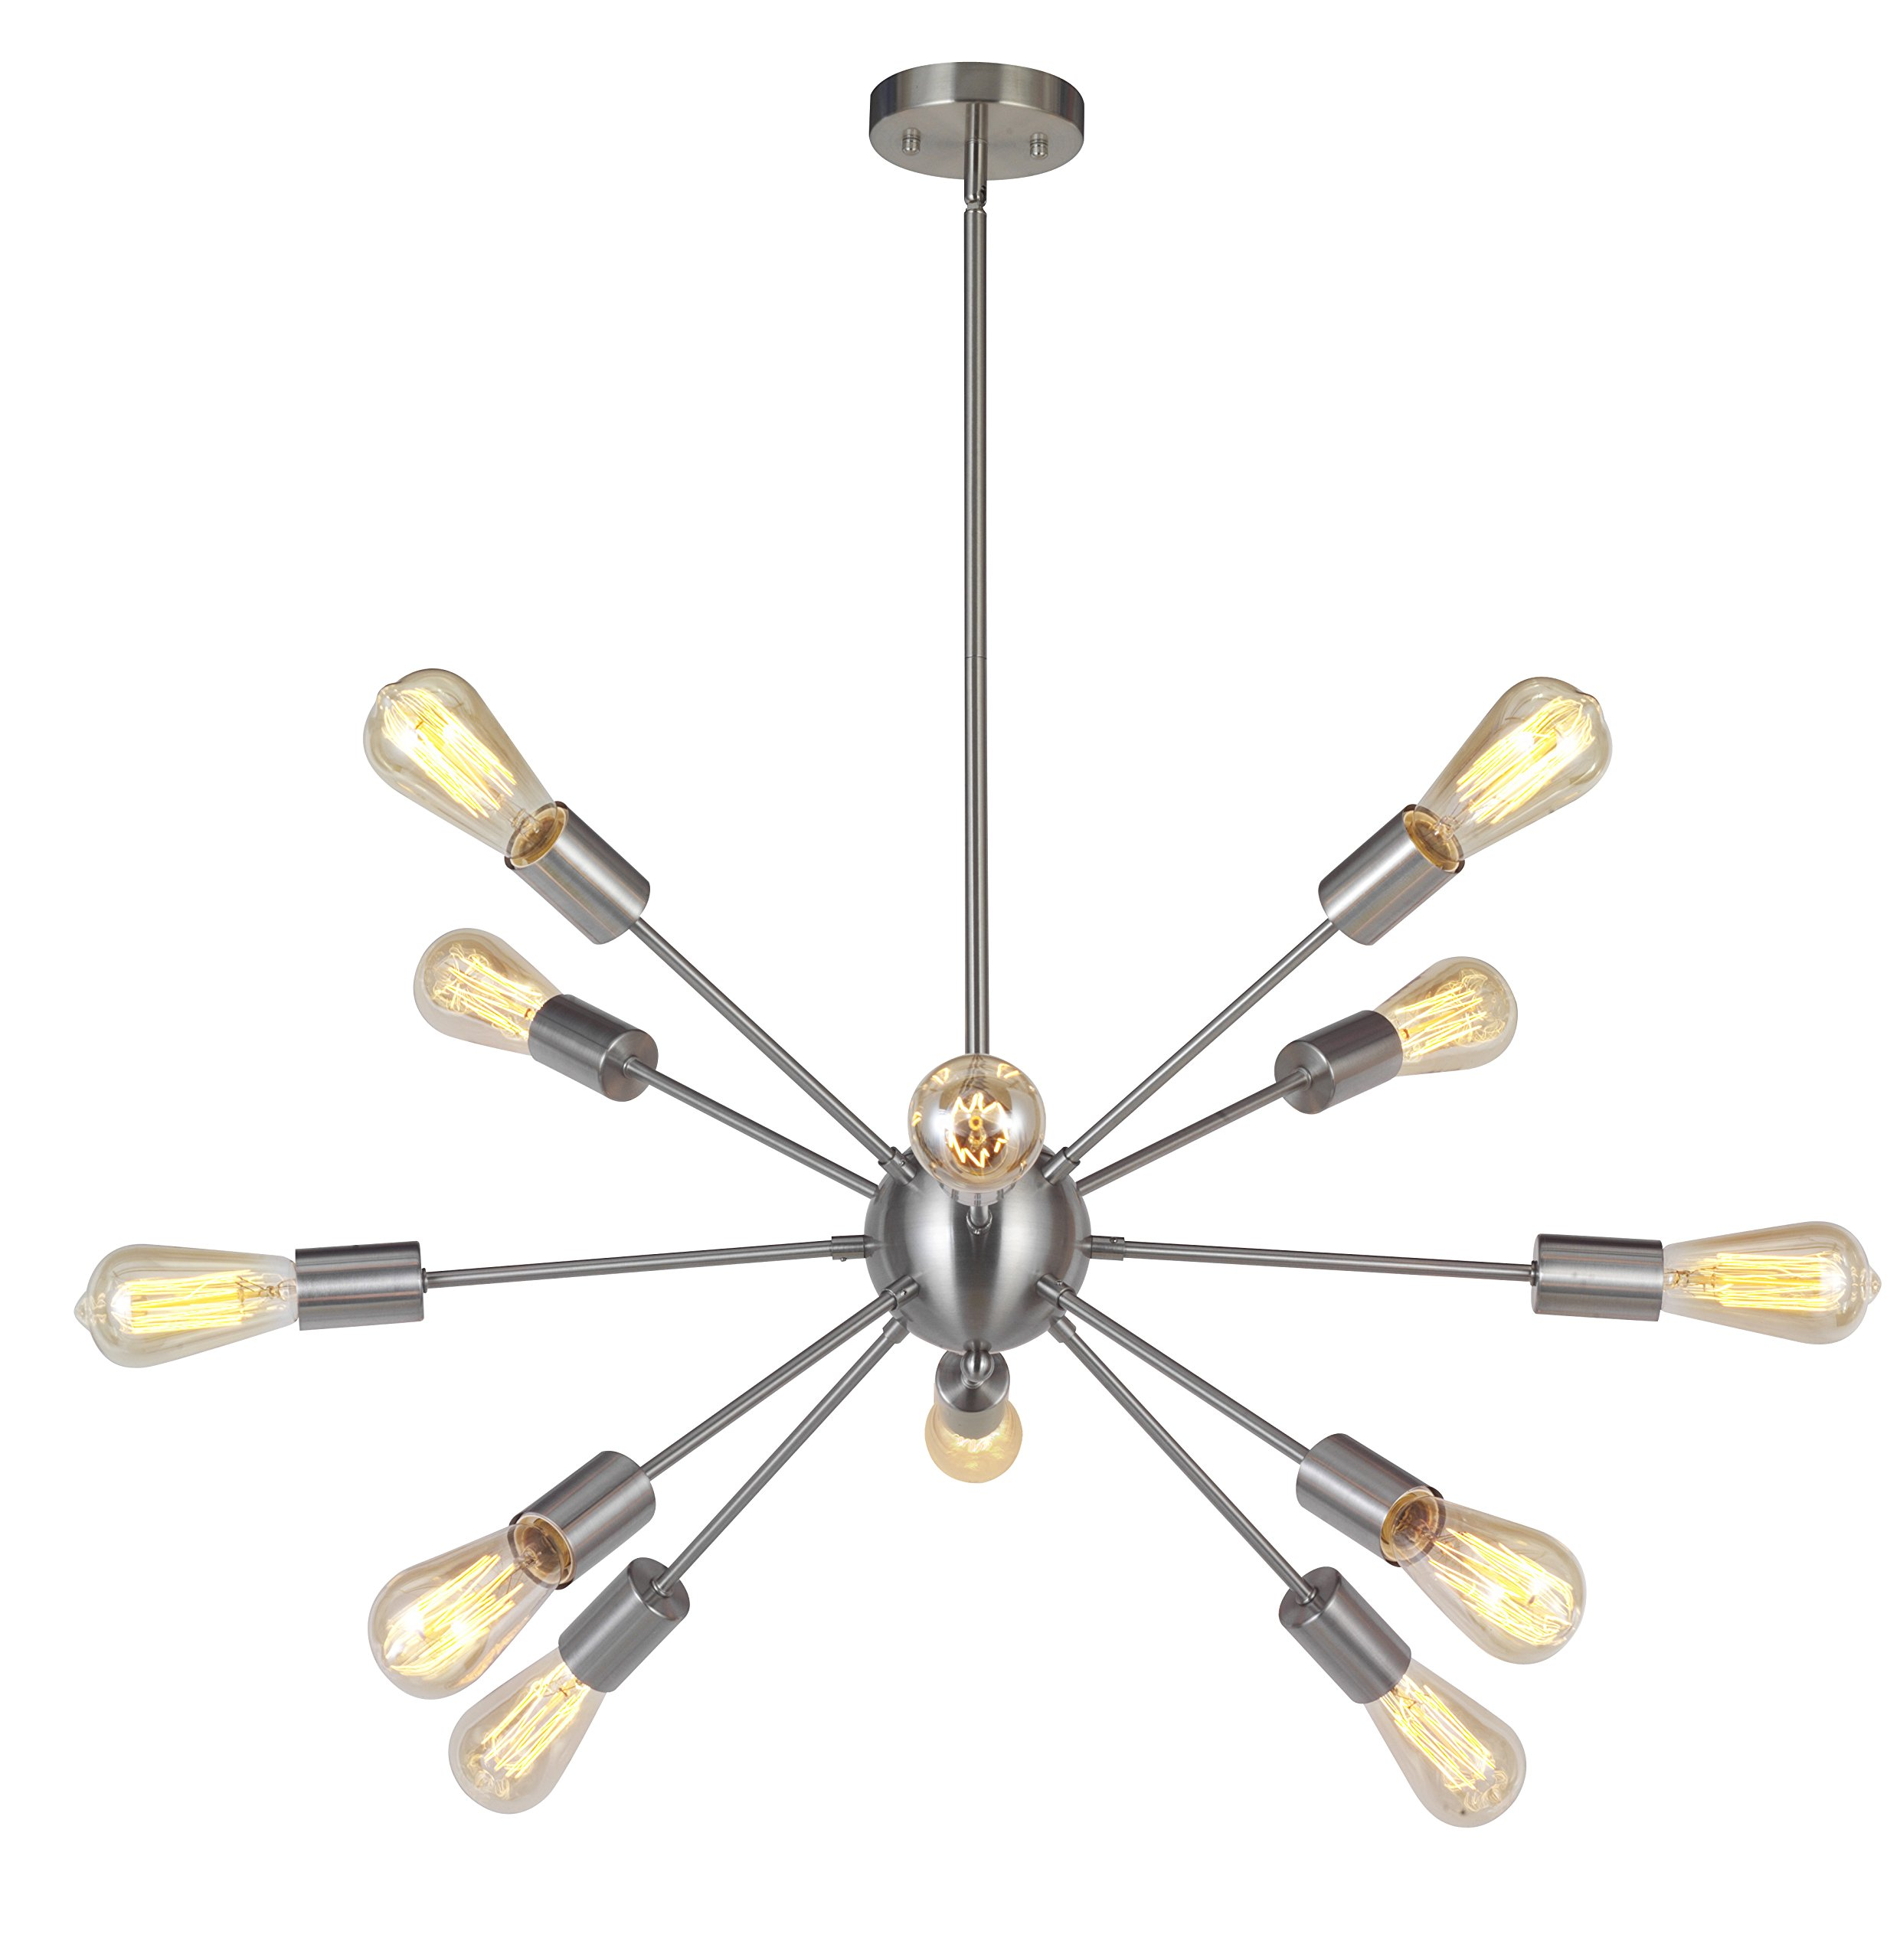 """Sputnik Chandelier 12 Lights Modern Pendant Lighting Brushed Nickel Industrial Vintage Ceiling Light UL Listed by VINLUZ - Easy Install - All the arms are pre-wired and pre-threaded for easy installation, Gently thread remaining wire and arms into the central ball and screwed , Thread the main wire through the extension rods, then install the fixture into a ceiling box. Chandelier Features - Swivel canopy could be mounted on vaulted or sloped ceilings and fully dimmable when used with a dimmable bulb and compatible dimmer switch. Height Adjustable Stem - With height adjustable stem, includes four 10"""" hard stems to allow a variety of hanging heights. Dimentions:Chandelier: 37"""" (H) x 36.61"""" (D), Canopy: 4.72"""" (D). - kitchen-dining-room-decor, kitchen-dining-room, chandeliers-lighting - 81KACIulKlL -"""